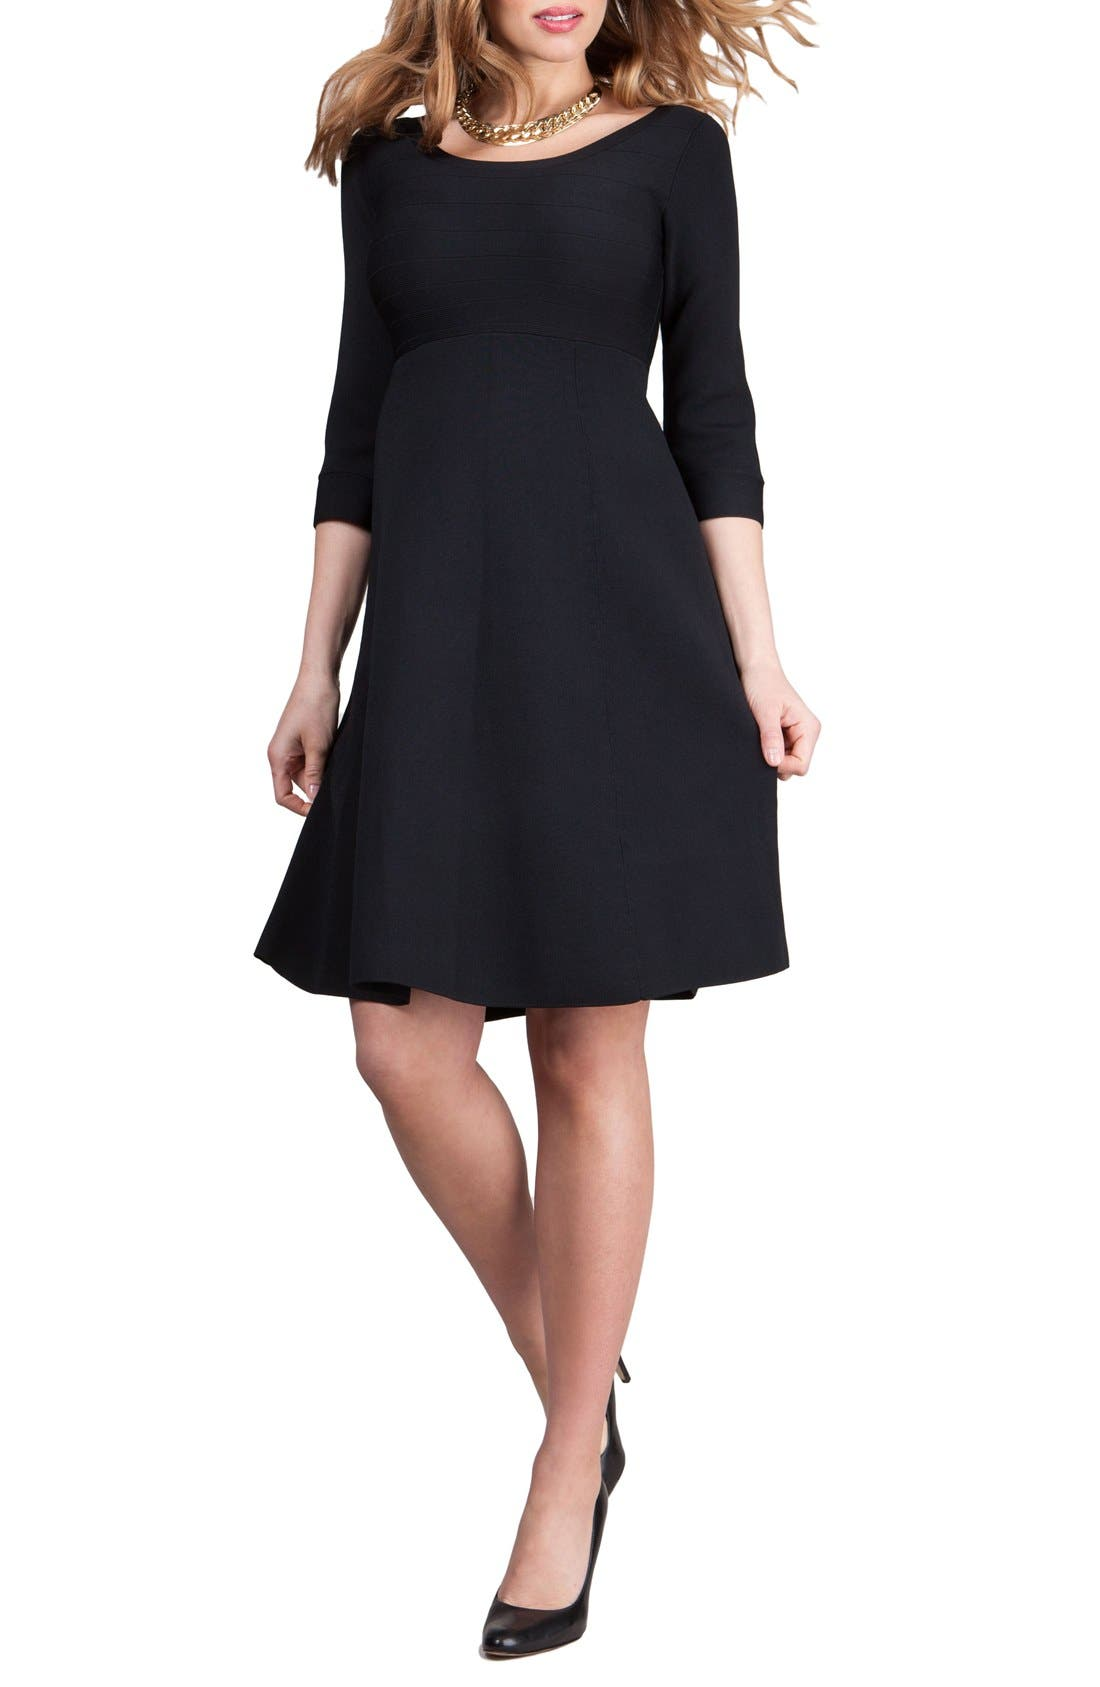 Seraphine Christine Fit & Flare Maternity Dress